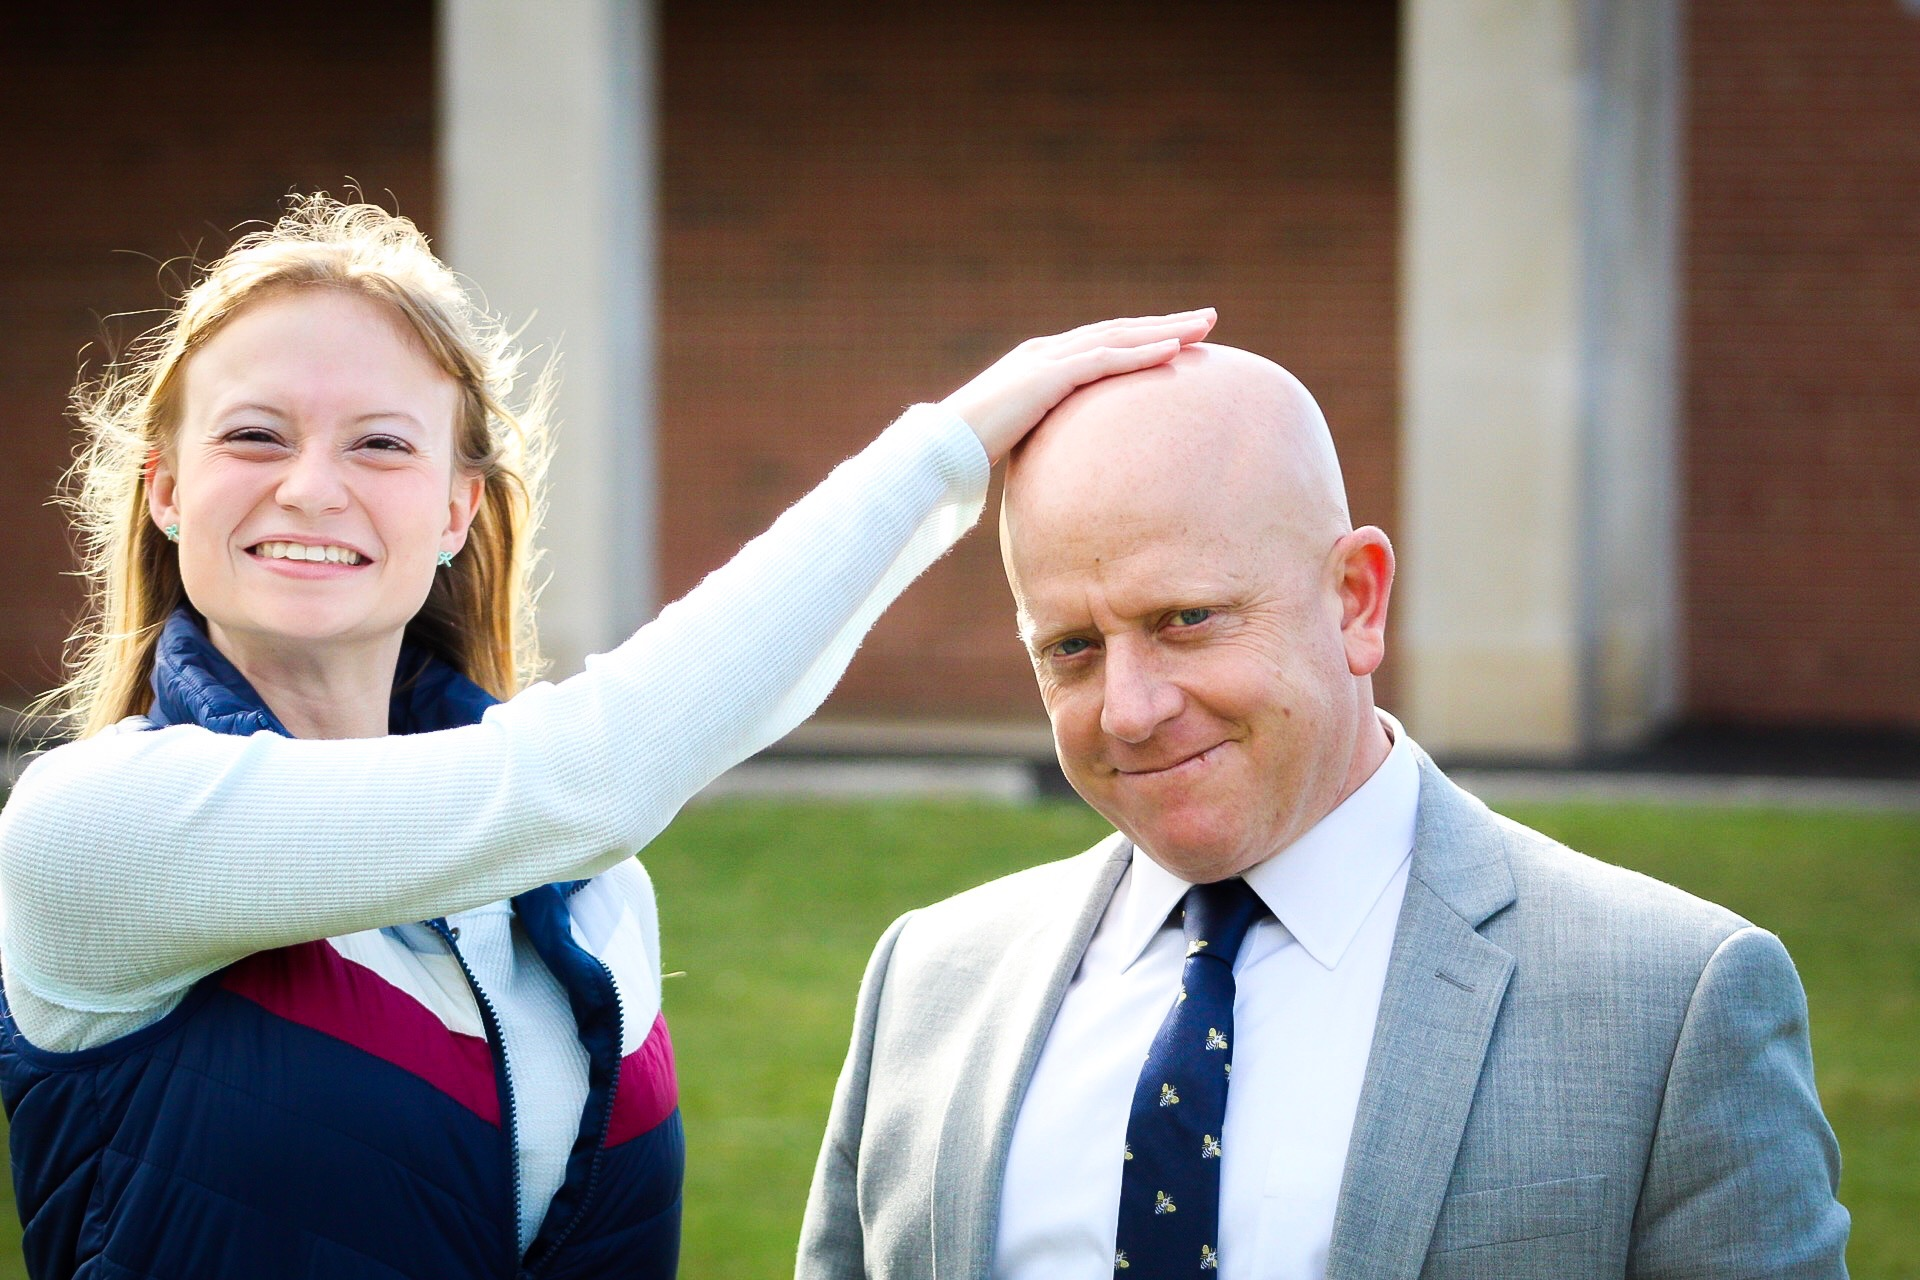 Provost reveals magical head-rubbing quality